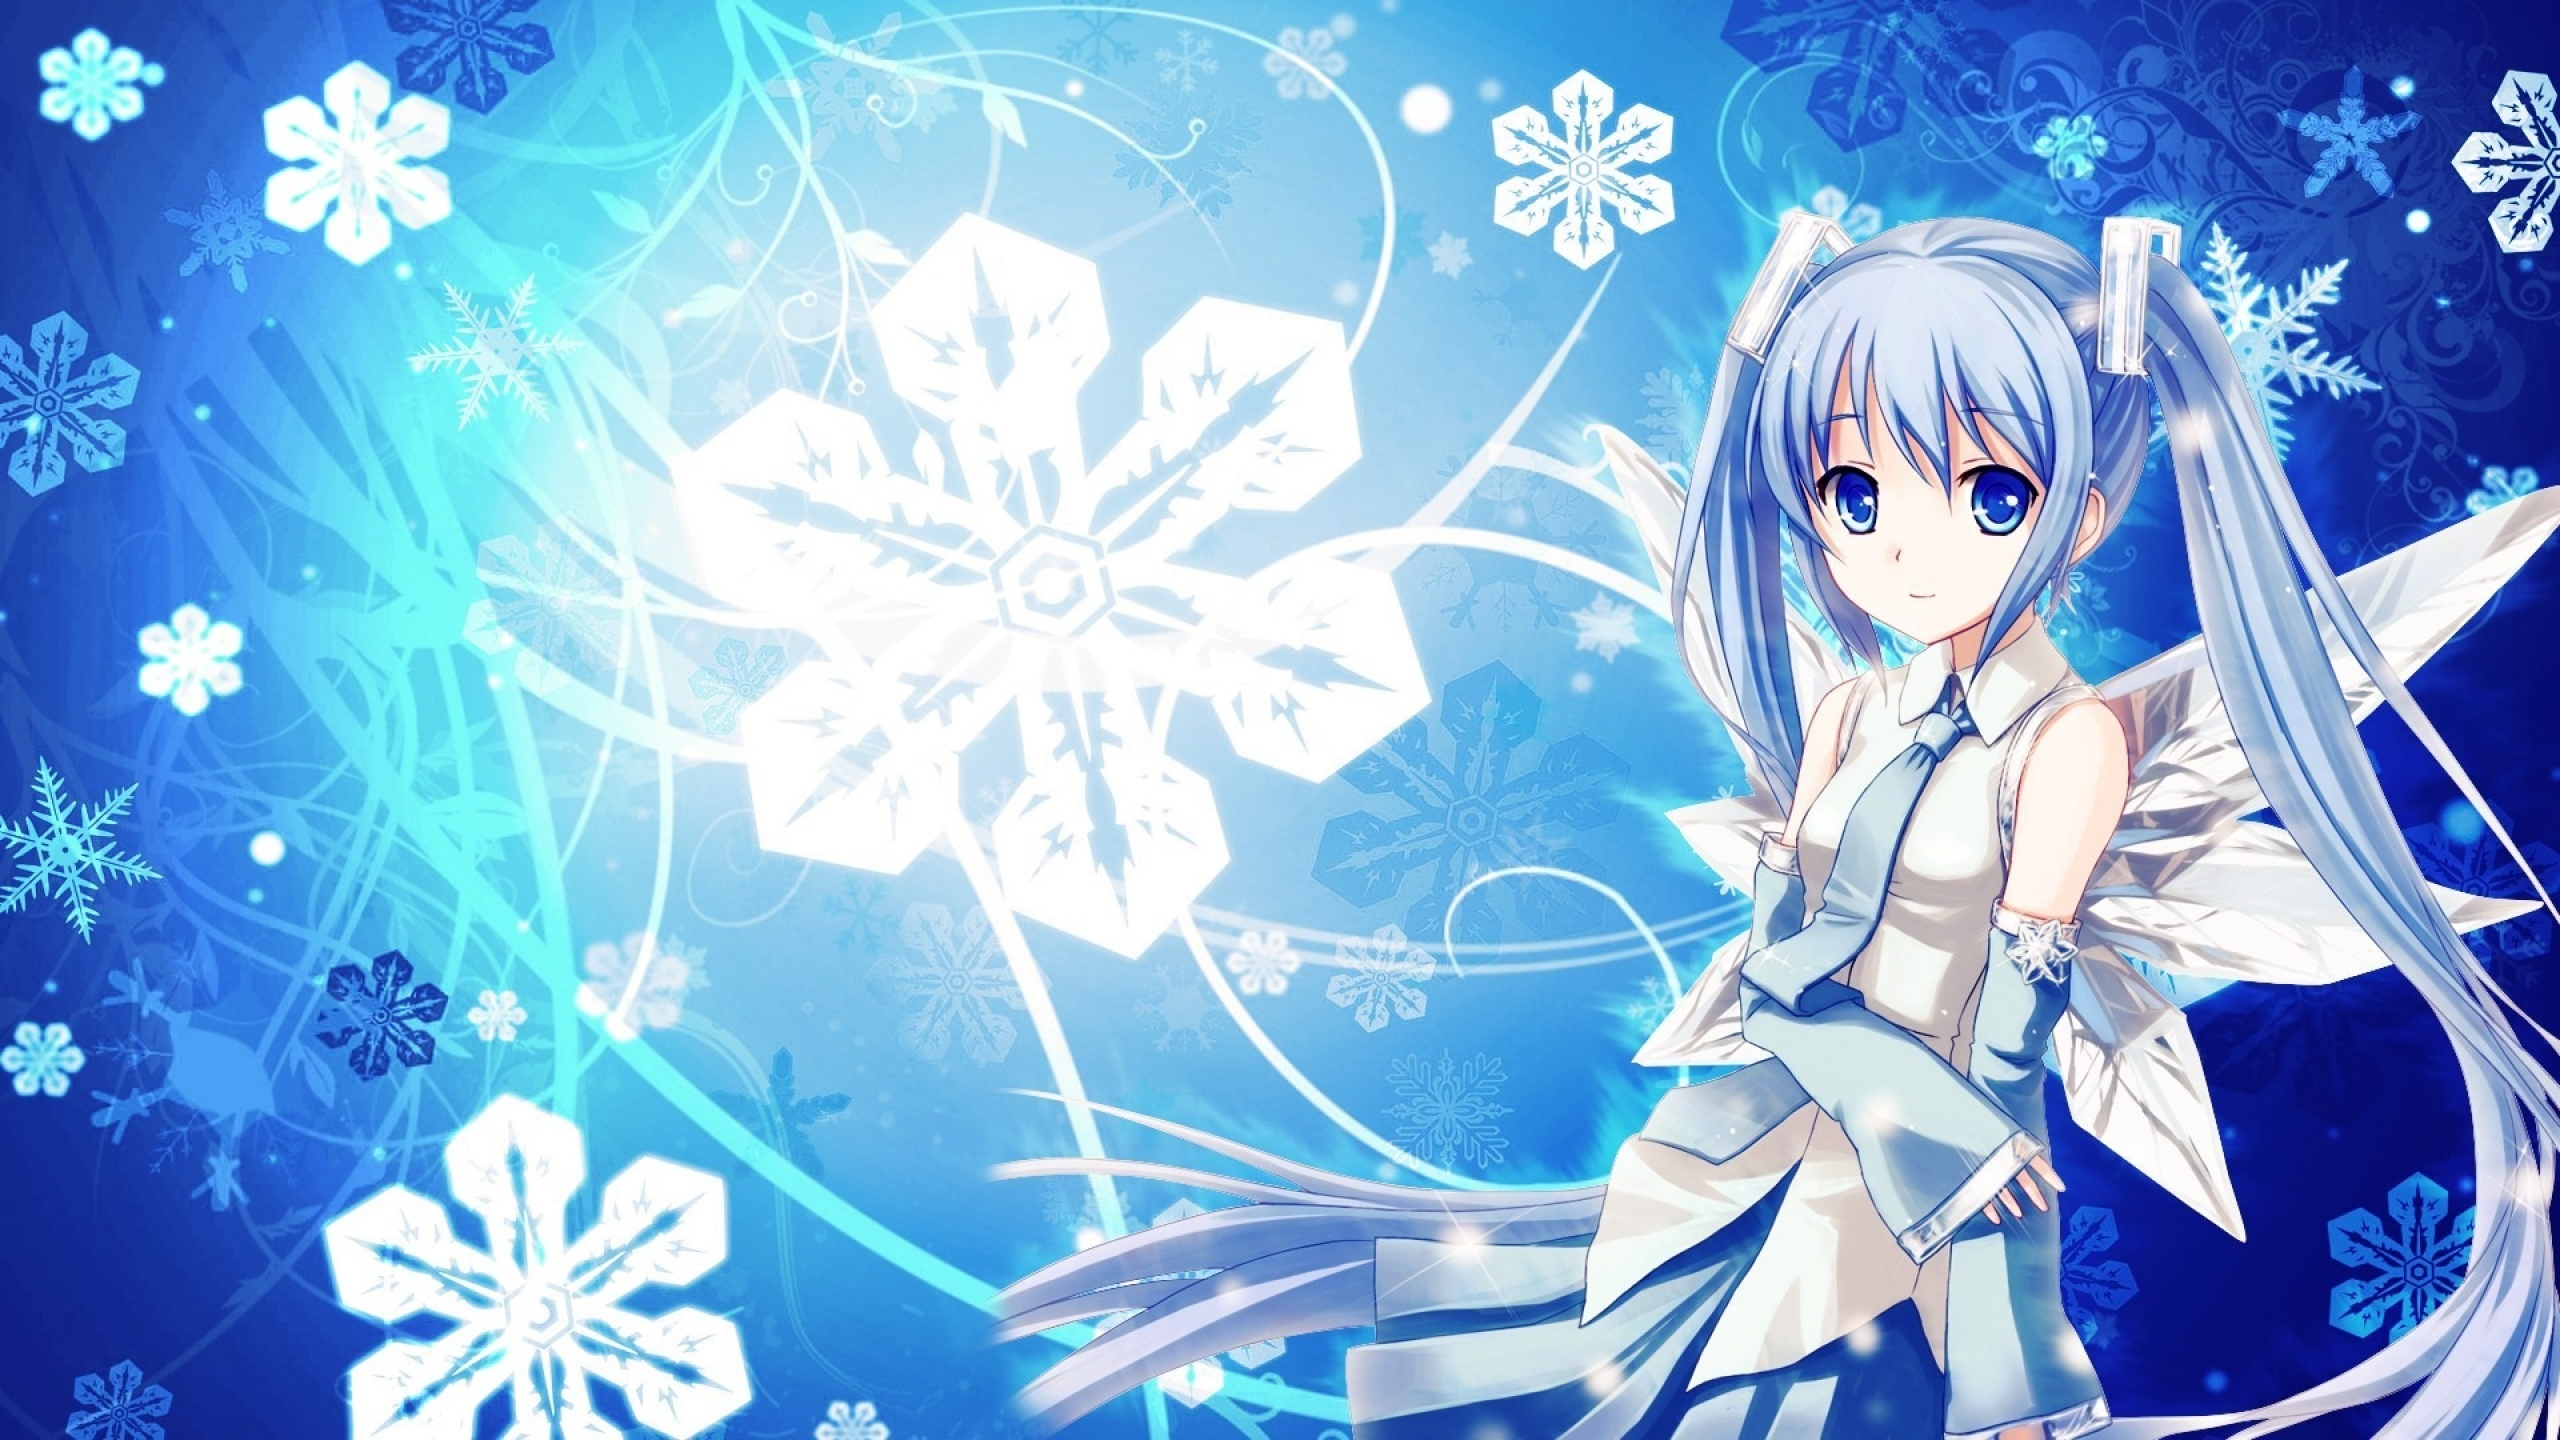 2560x1440 Girl Blue Hair & Snow Flakes YouTube Channel Cover